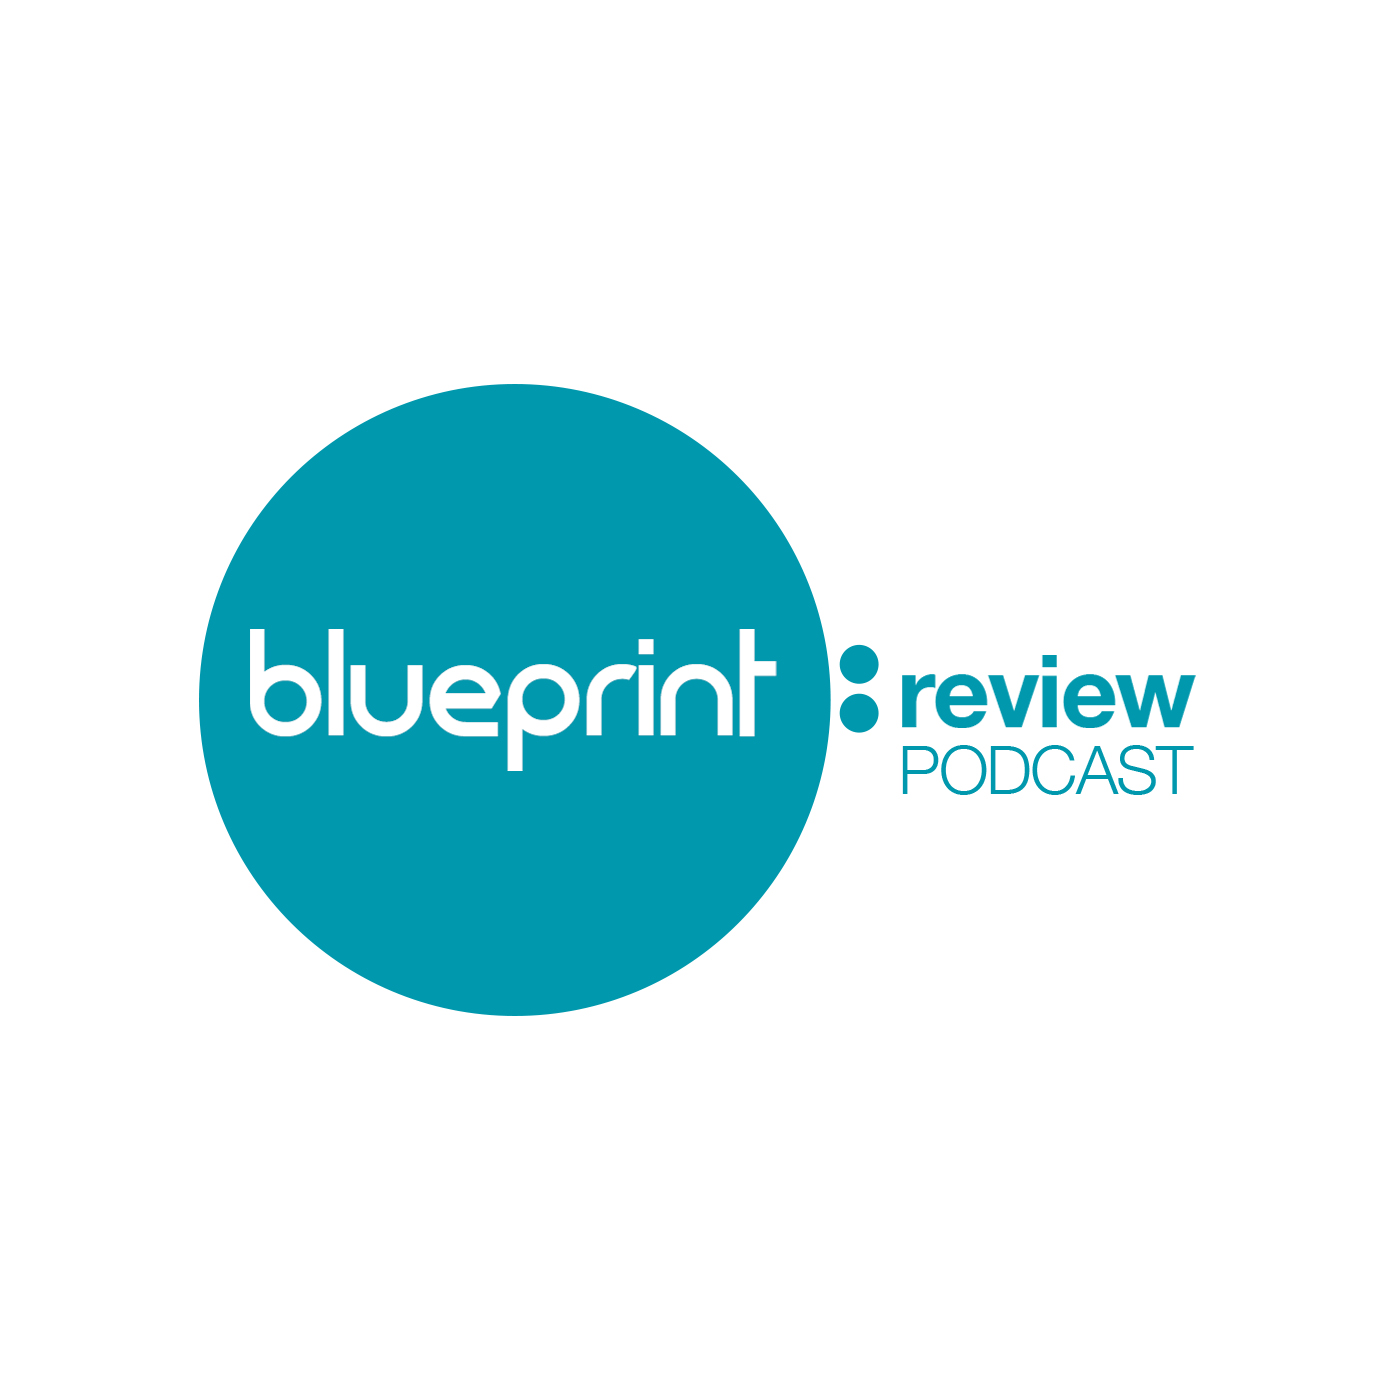 Blueprint: Review Podcast